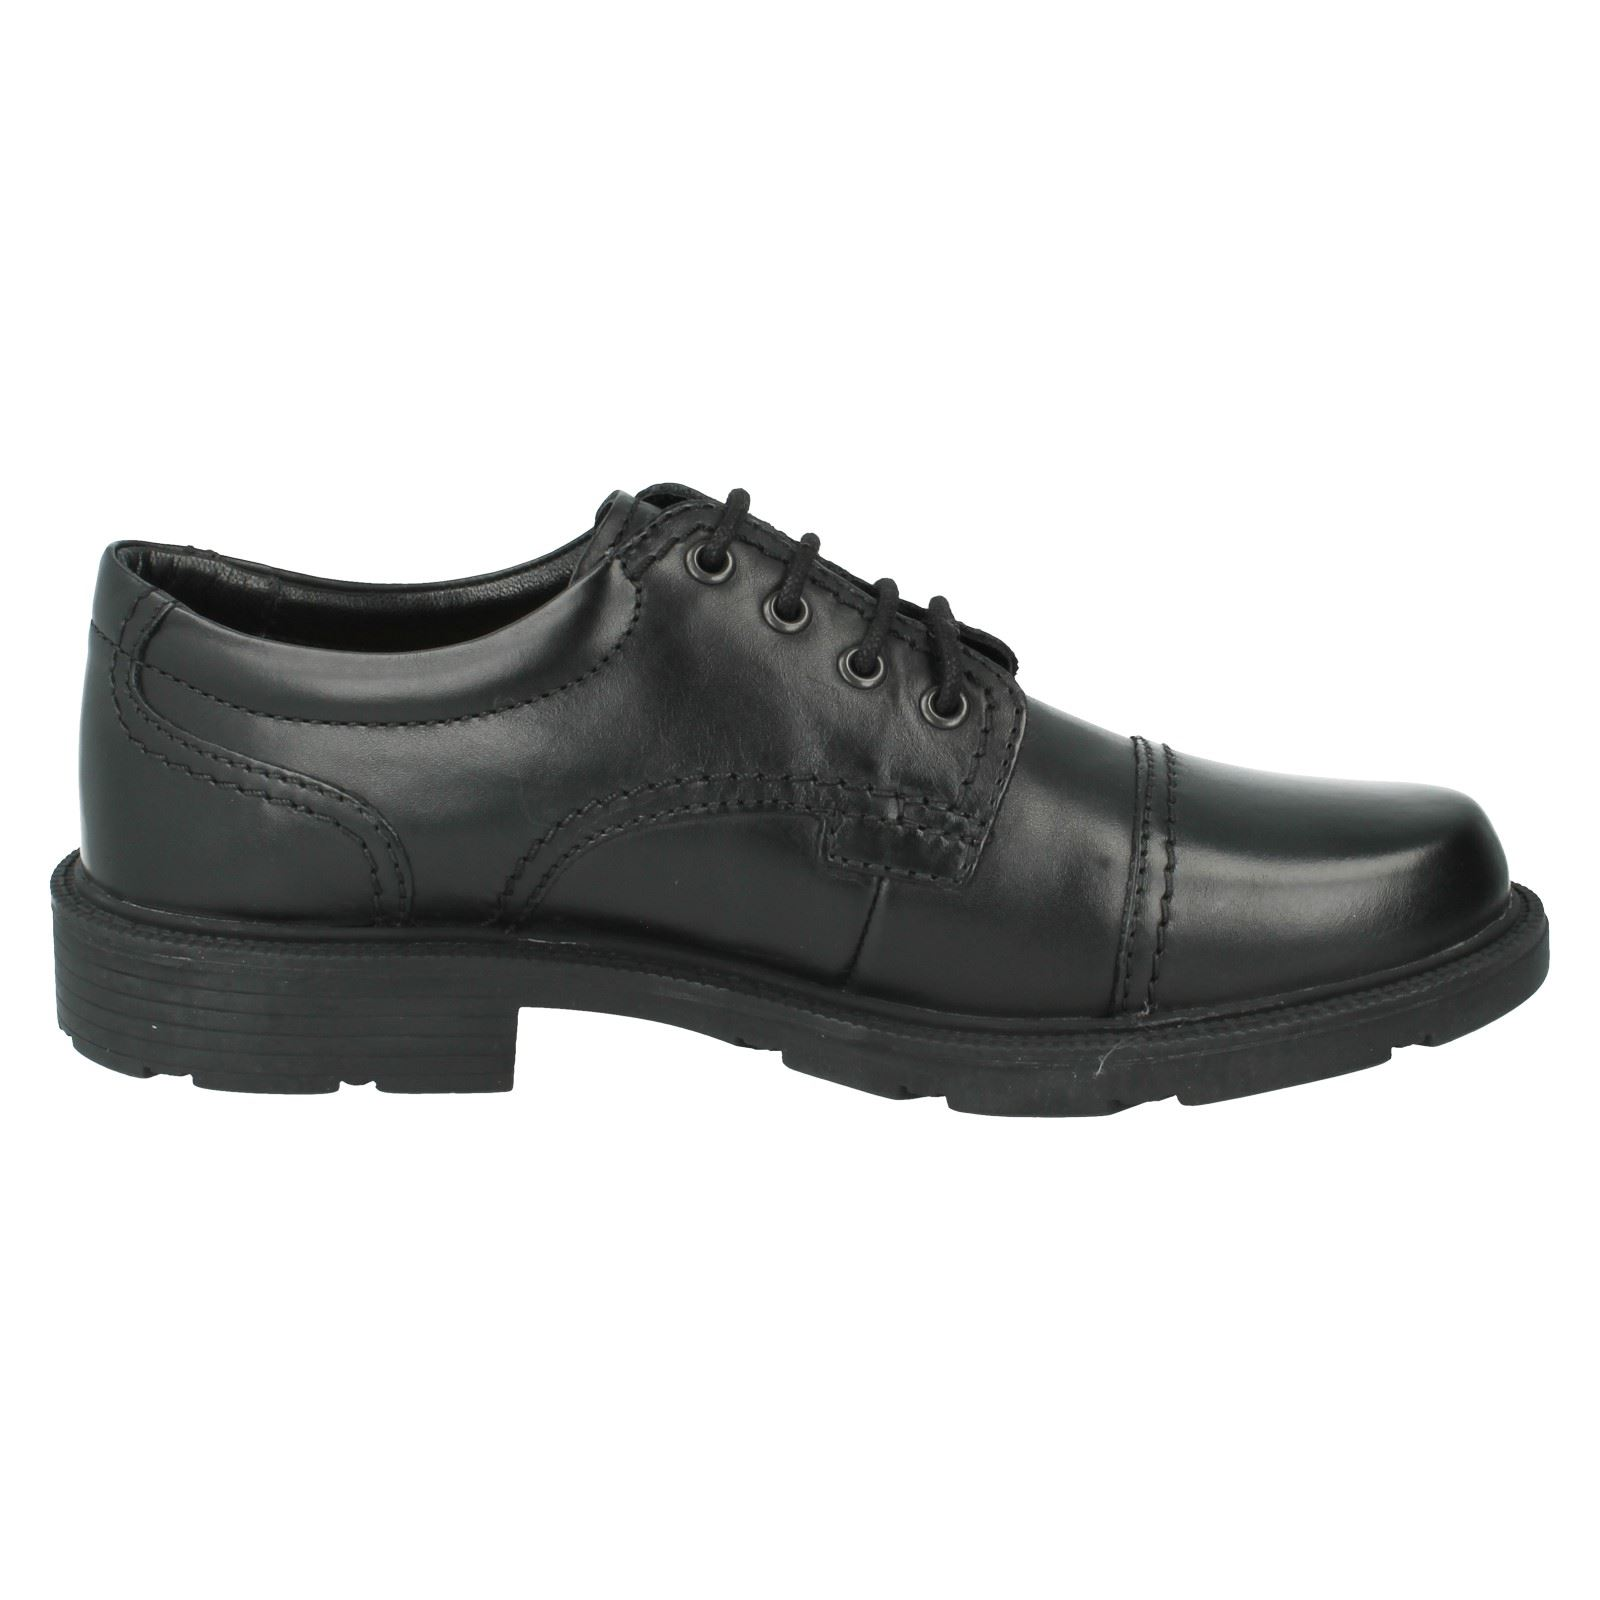 Clarks Lair Cap Shoes G Fitting